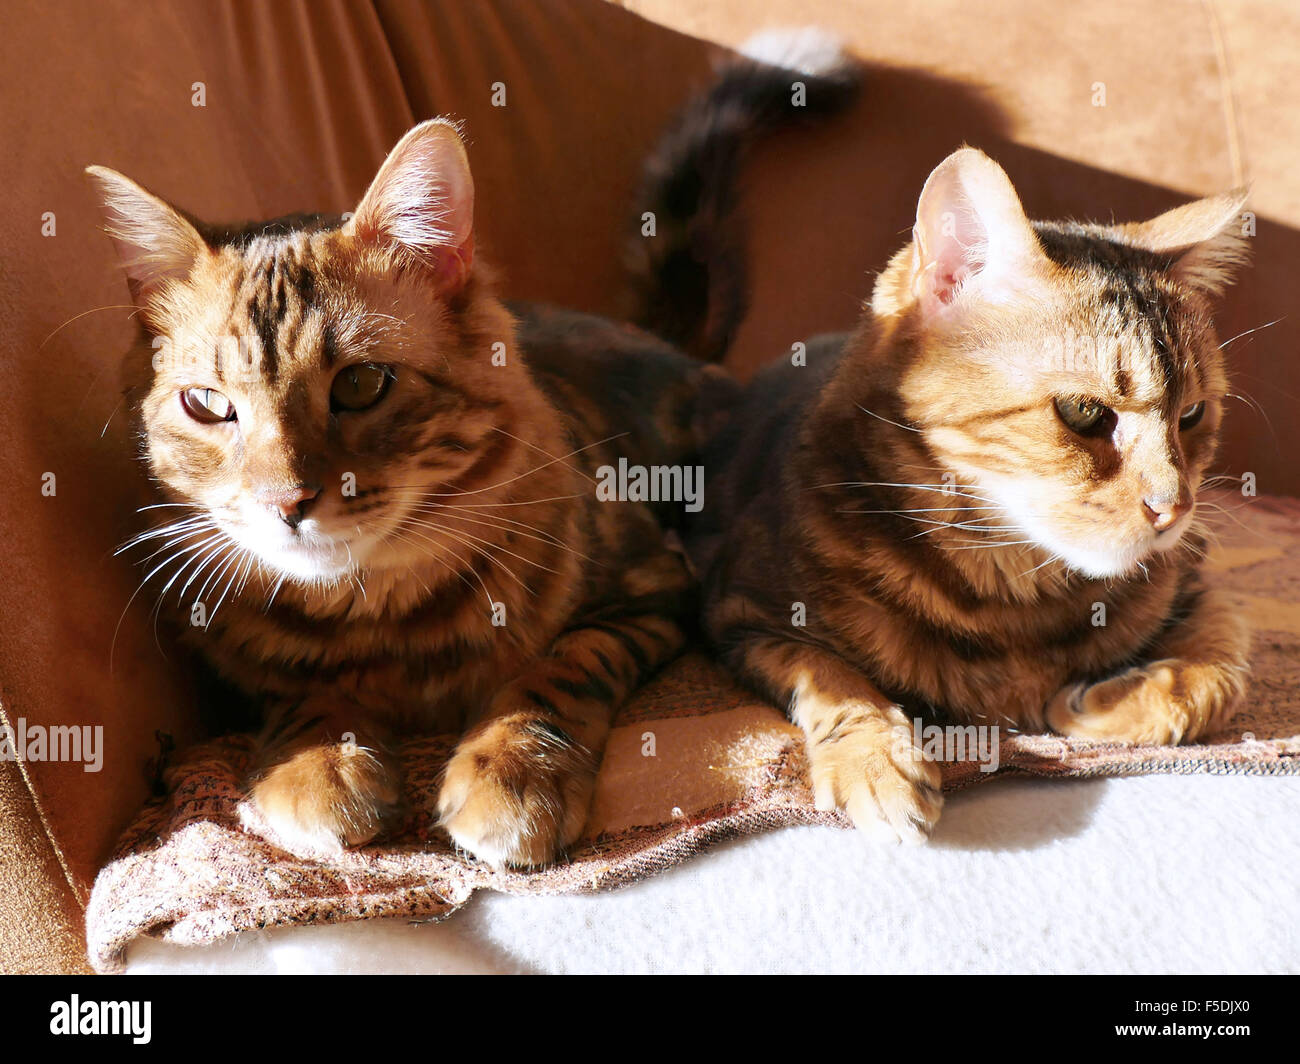 714bd3d708 Bengal cat  Marble bengal cashmere cat and marble bengal cat taken at home  sitting next to eachother in the sun